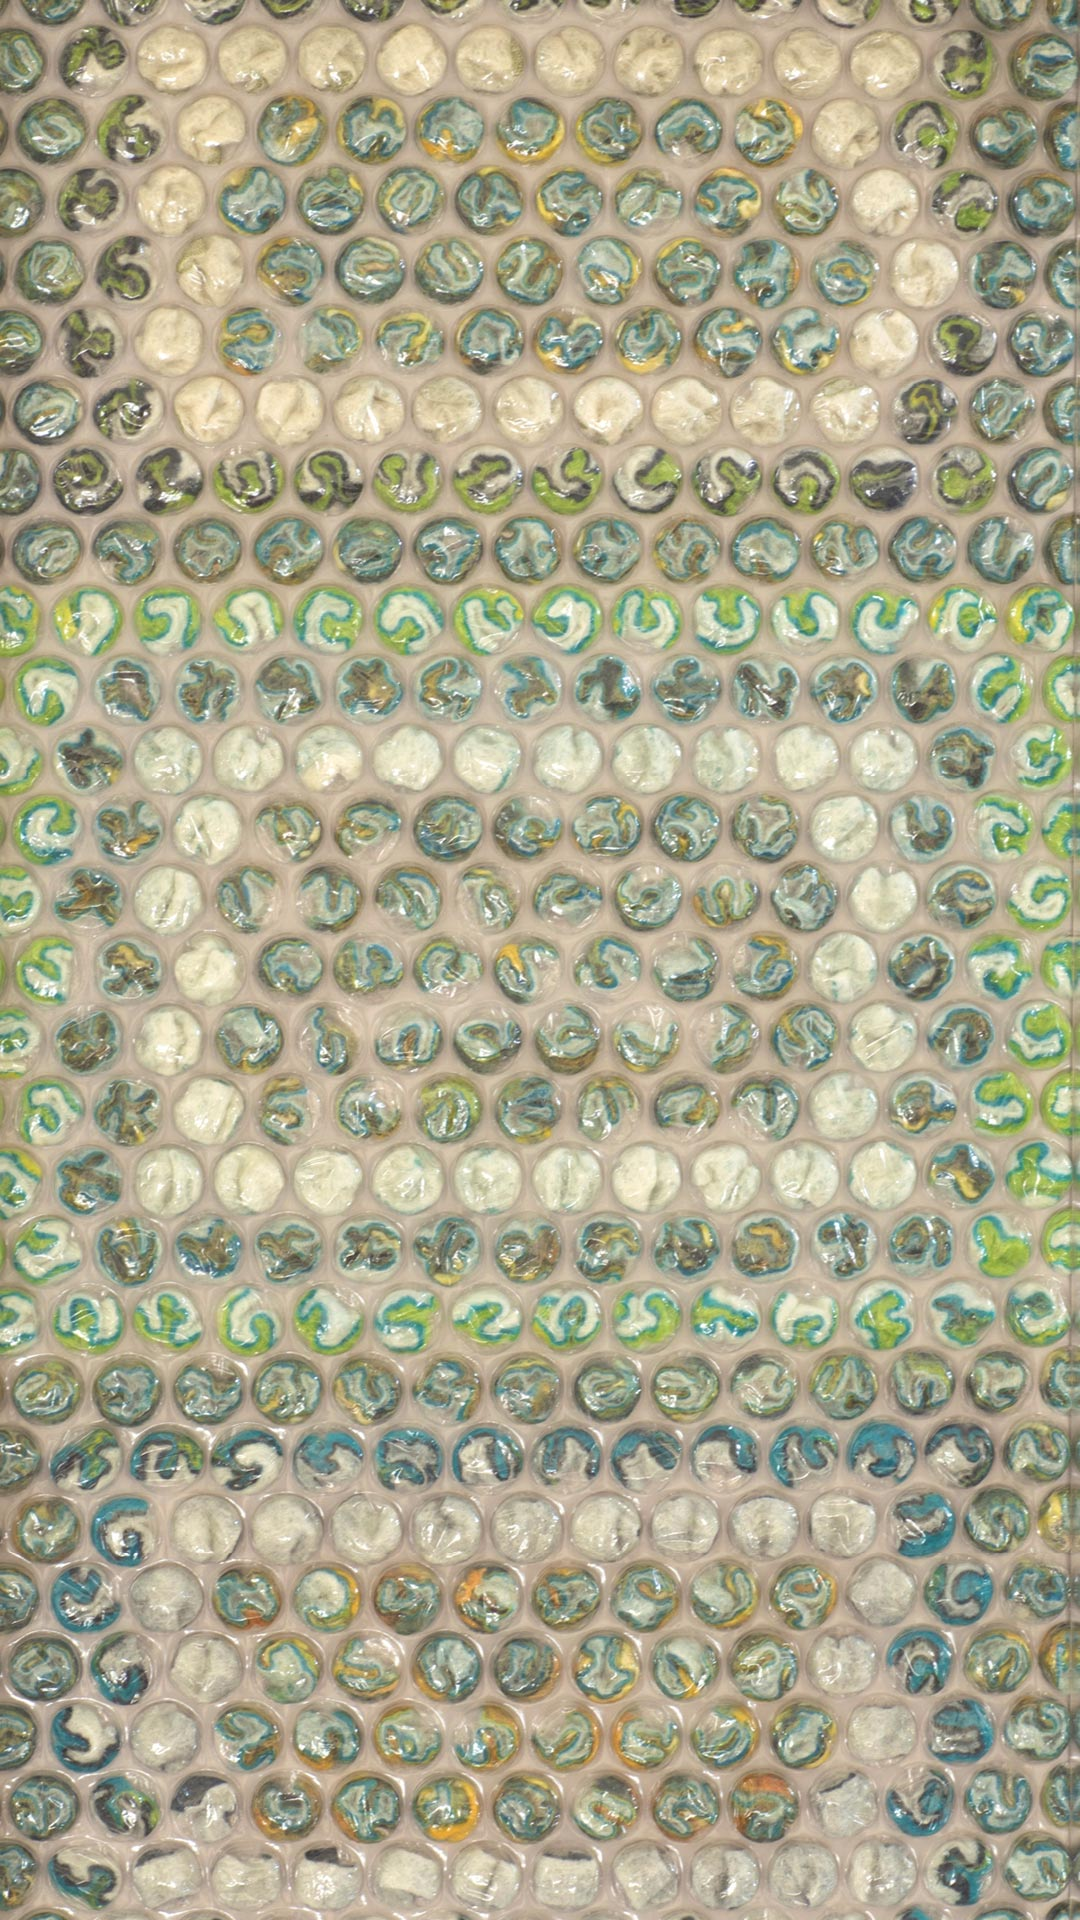 Bubble wrap textile art which features as part of Gail Hawes exhibition ROUND. All artworks featured bubble wrap filled with a variety of textiles including wool, hand made felt, silk fabric. This artwork features multi coloured,  layered hand made and hand stitched feltwithin the bubbles.